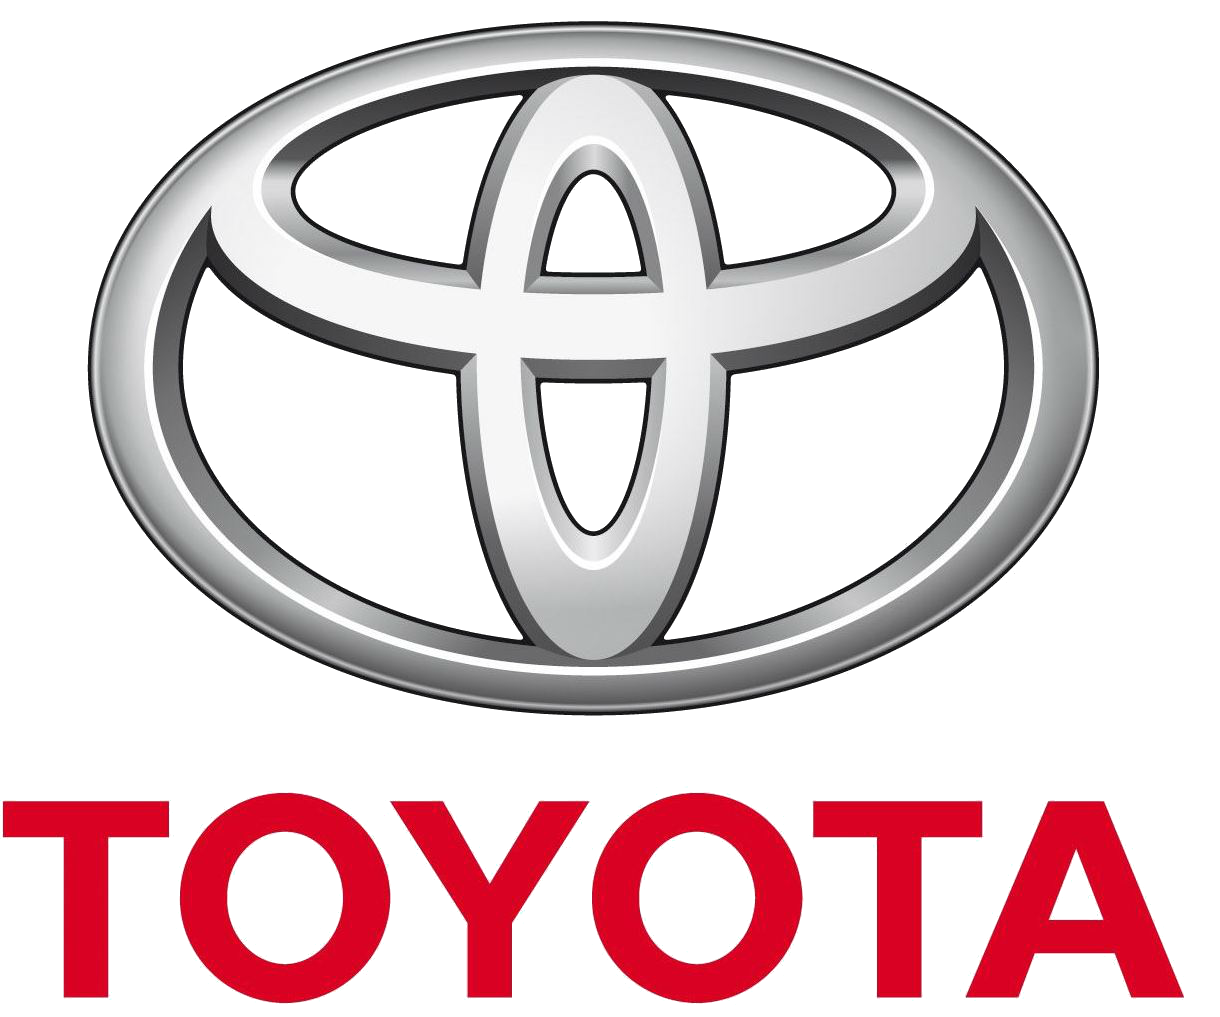 Toyota Logo, Toyota Car Symbol Meaning and History.